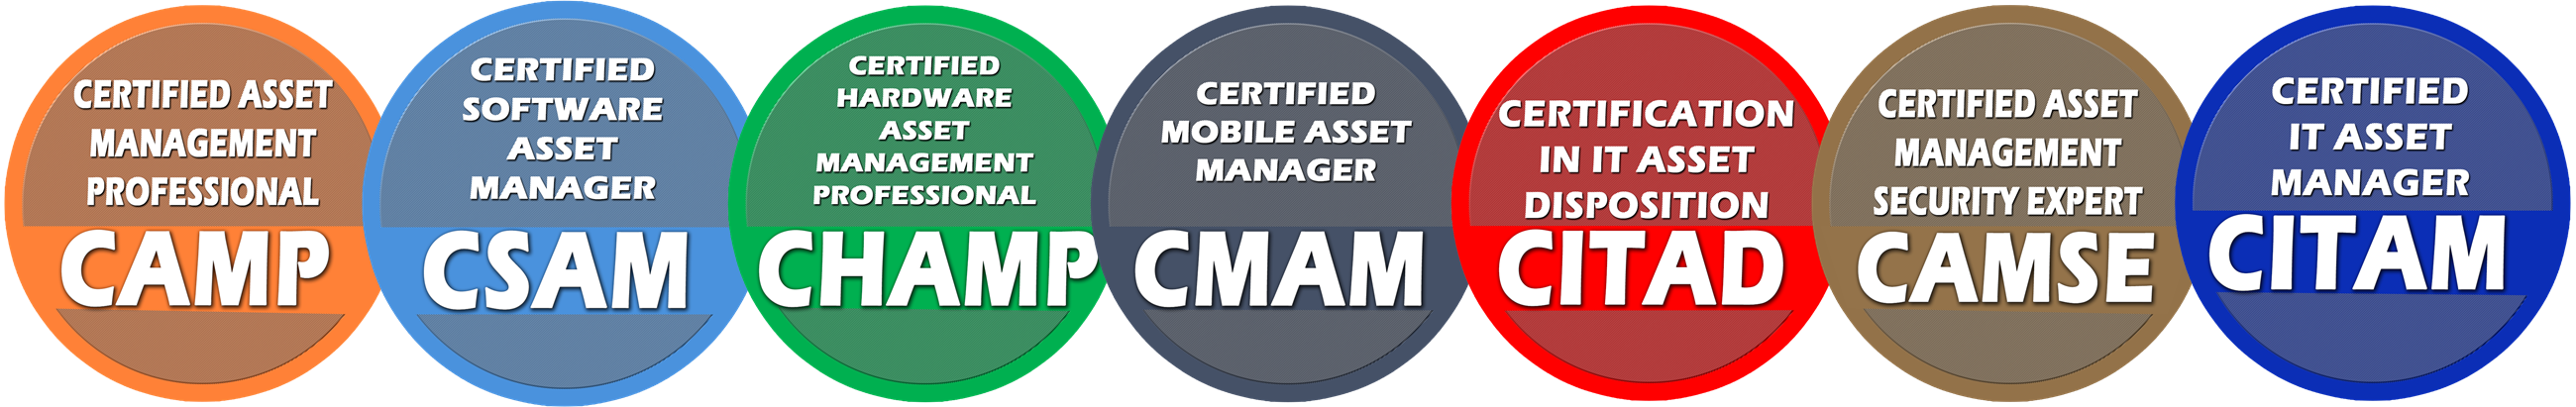 IAITAM Certifications in IT Asset Management - ITAM